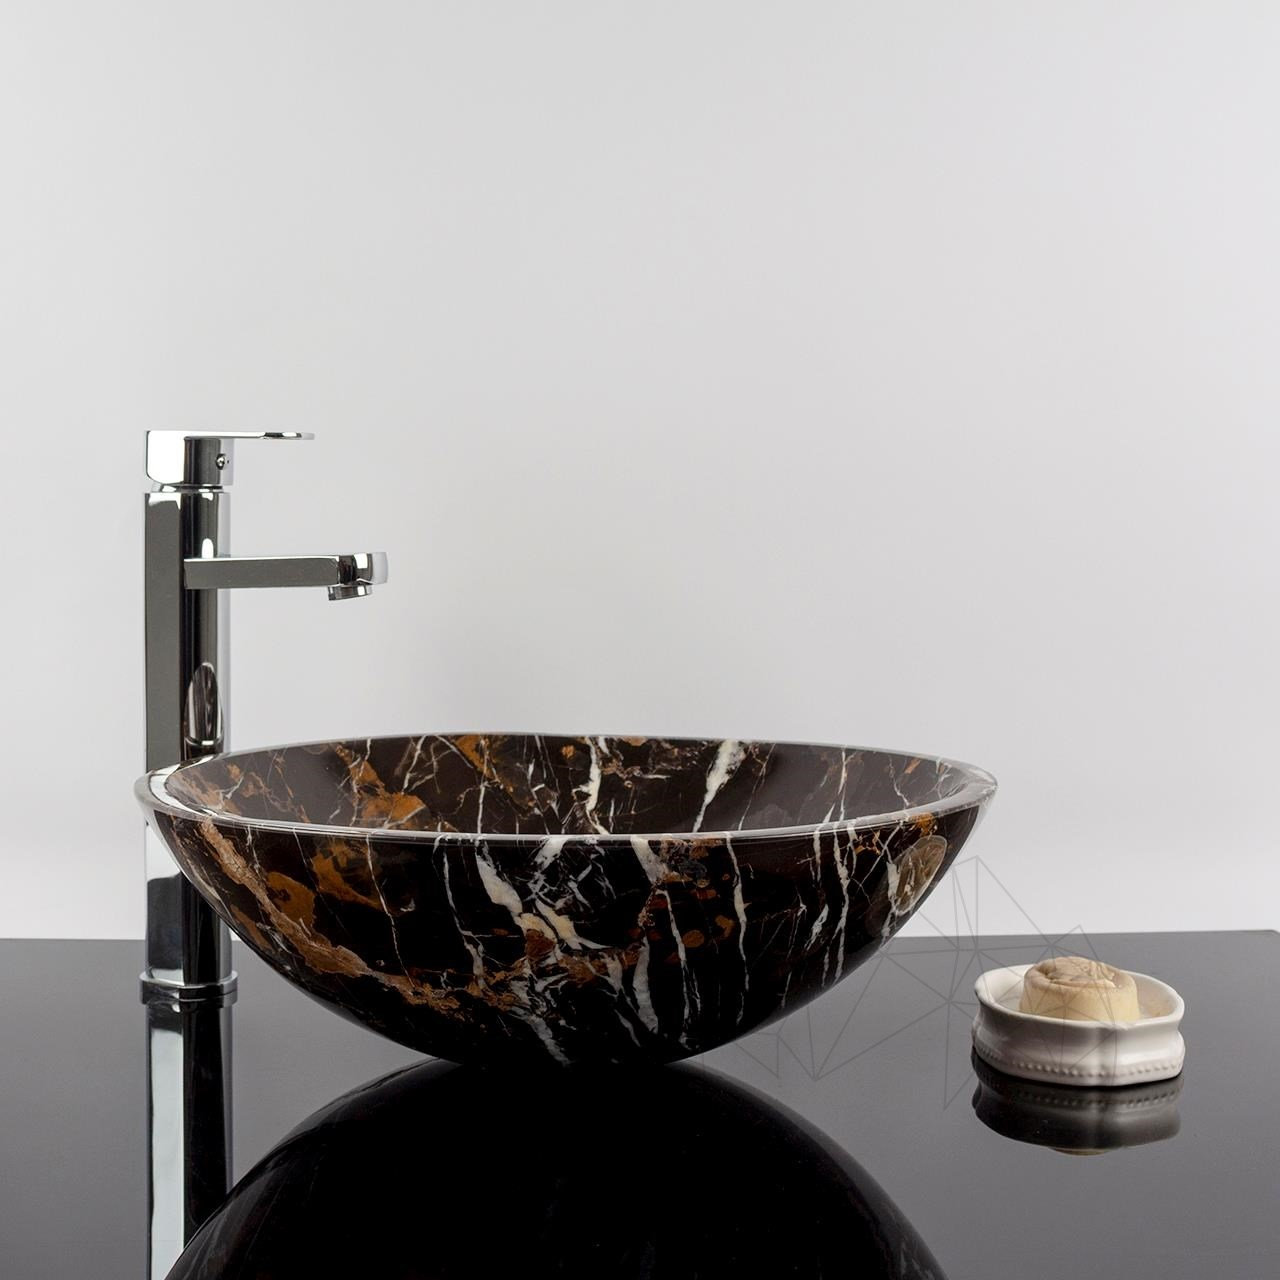 Bathroom Sink - Portoro Gold Marble, 42 x 14 cm title=Bathroom Sink - Portoro Gold Marble, 42 x 14 cm